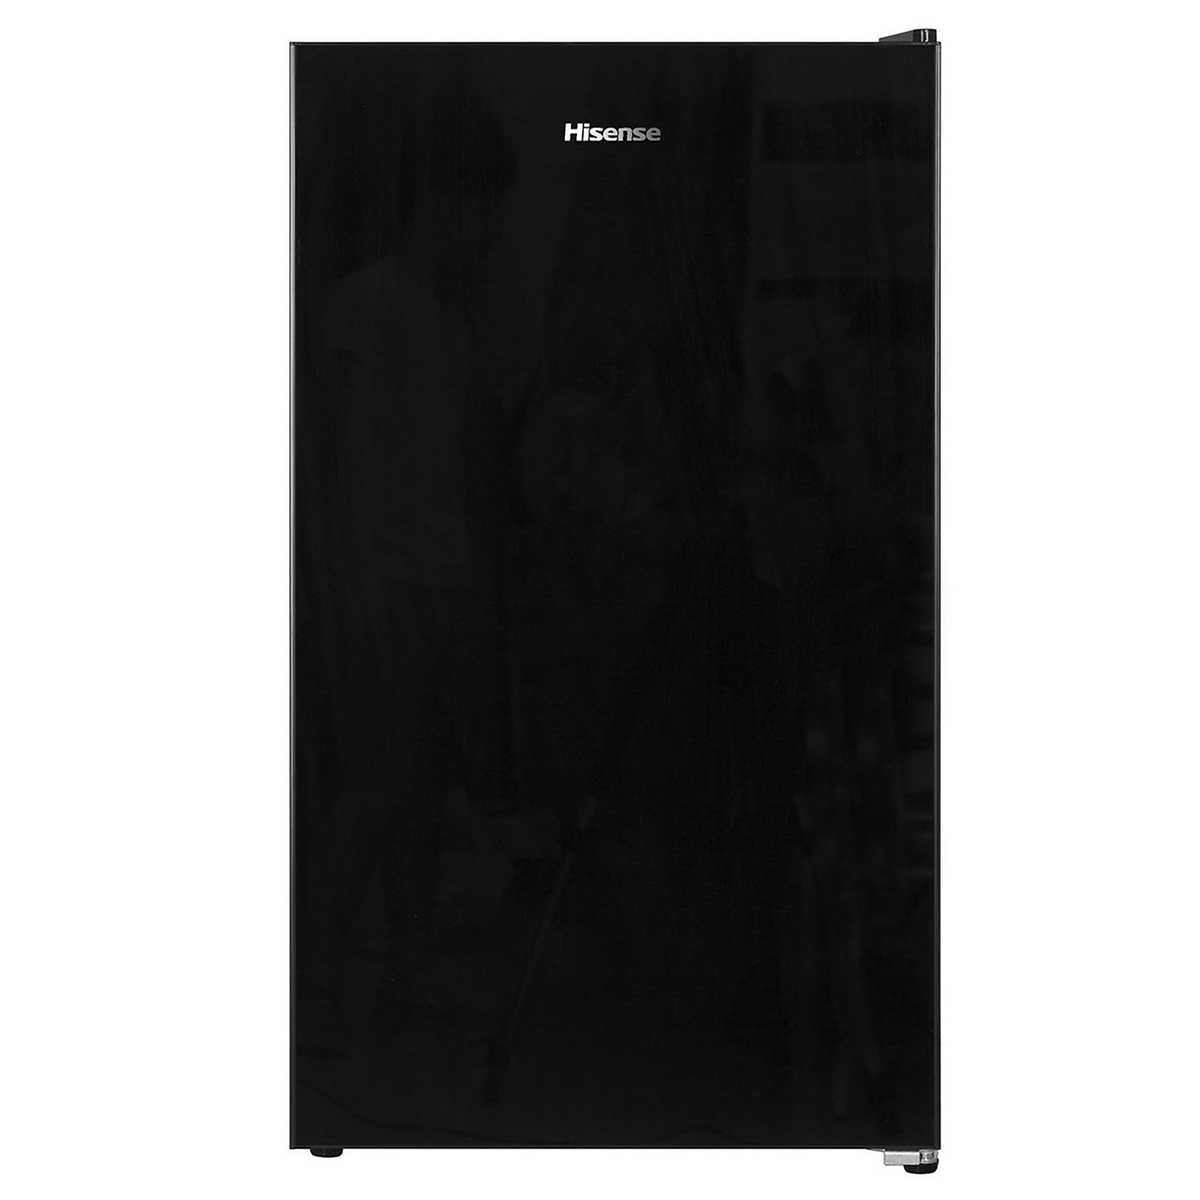 Hisense 4 4 cu ft Glass Door Compact Refrigerator - RS44G1